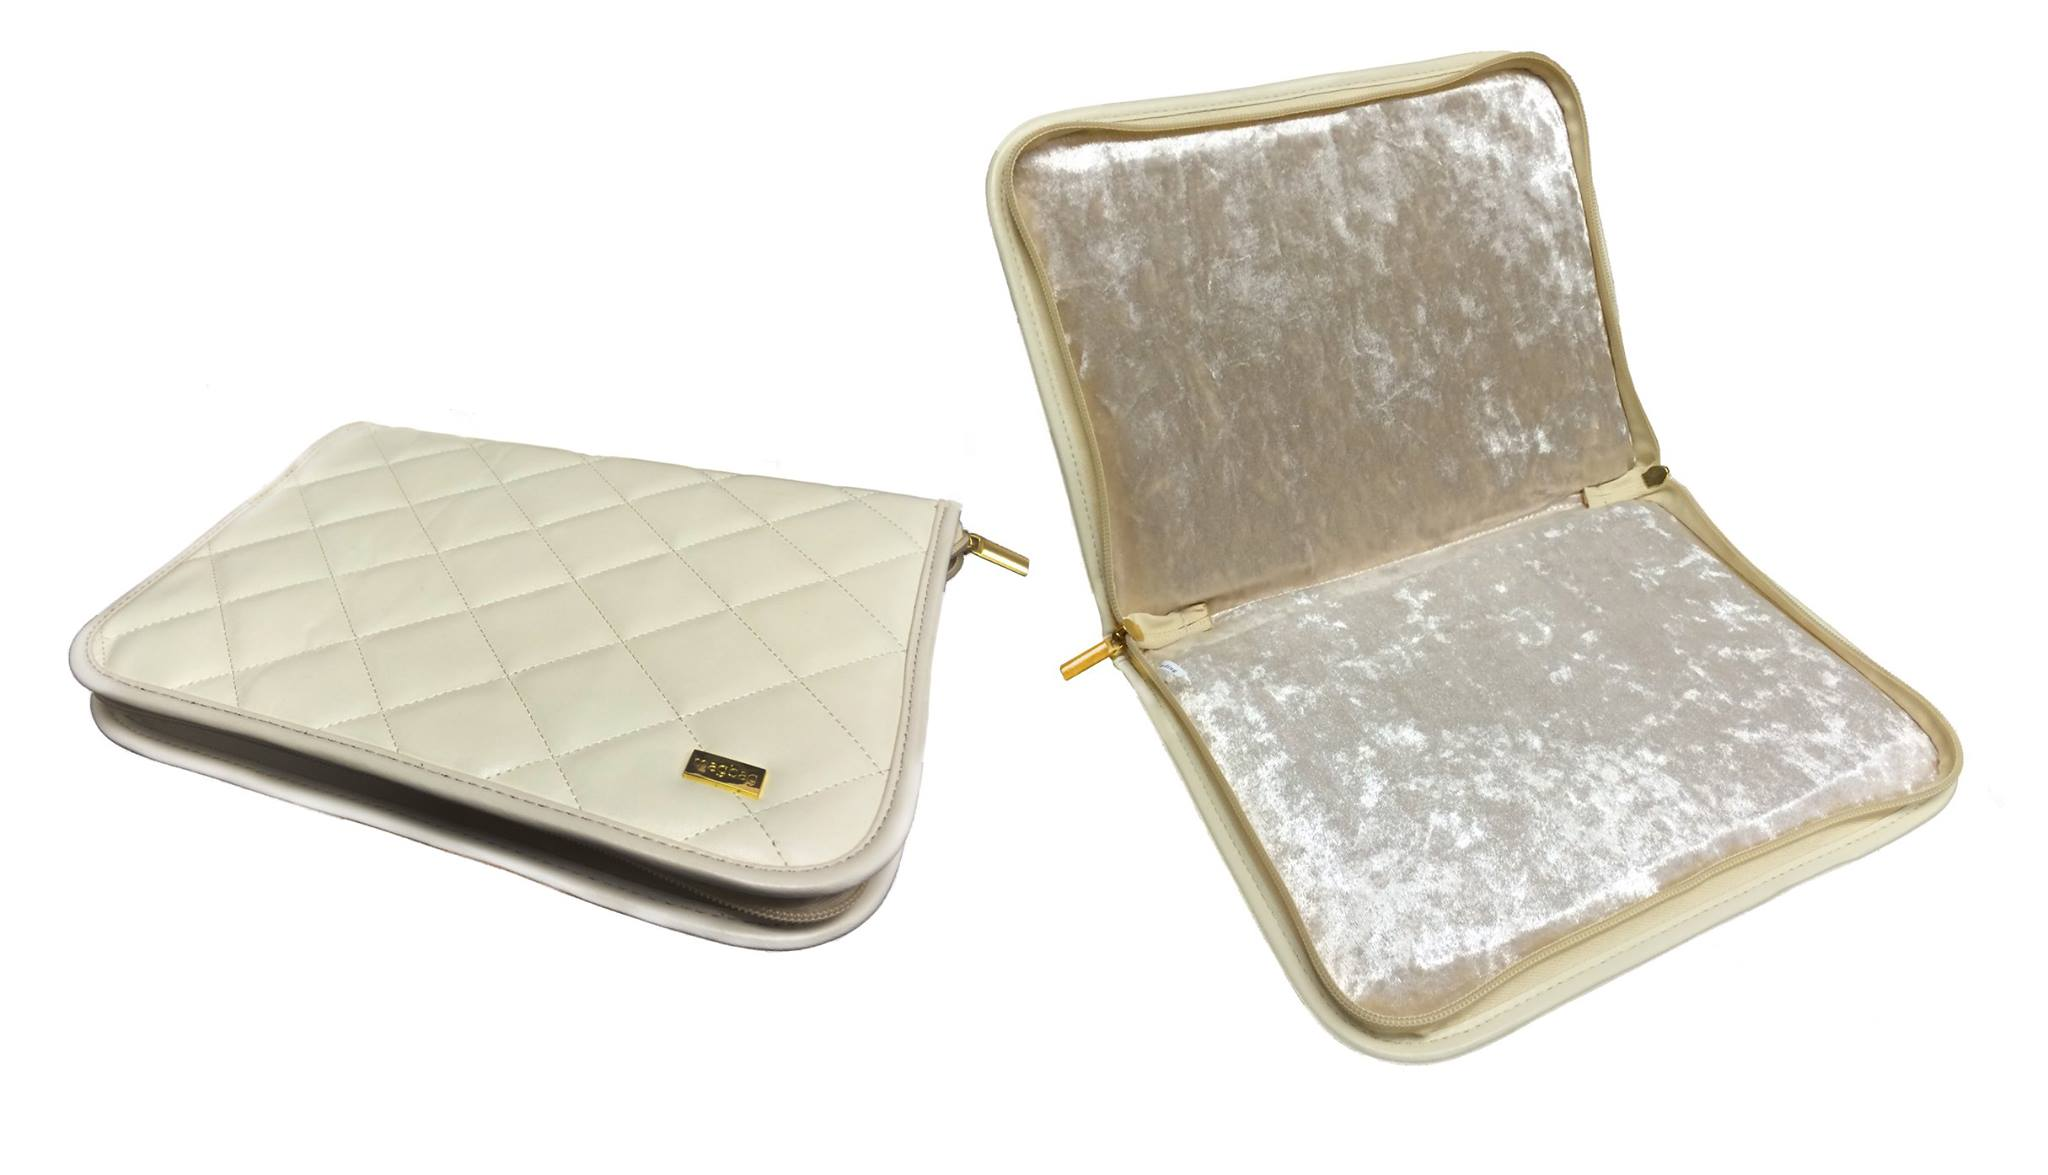 MAGBAG, An Innovative Jewelry & Cosmetic Case You Will Adore